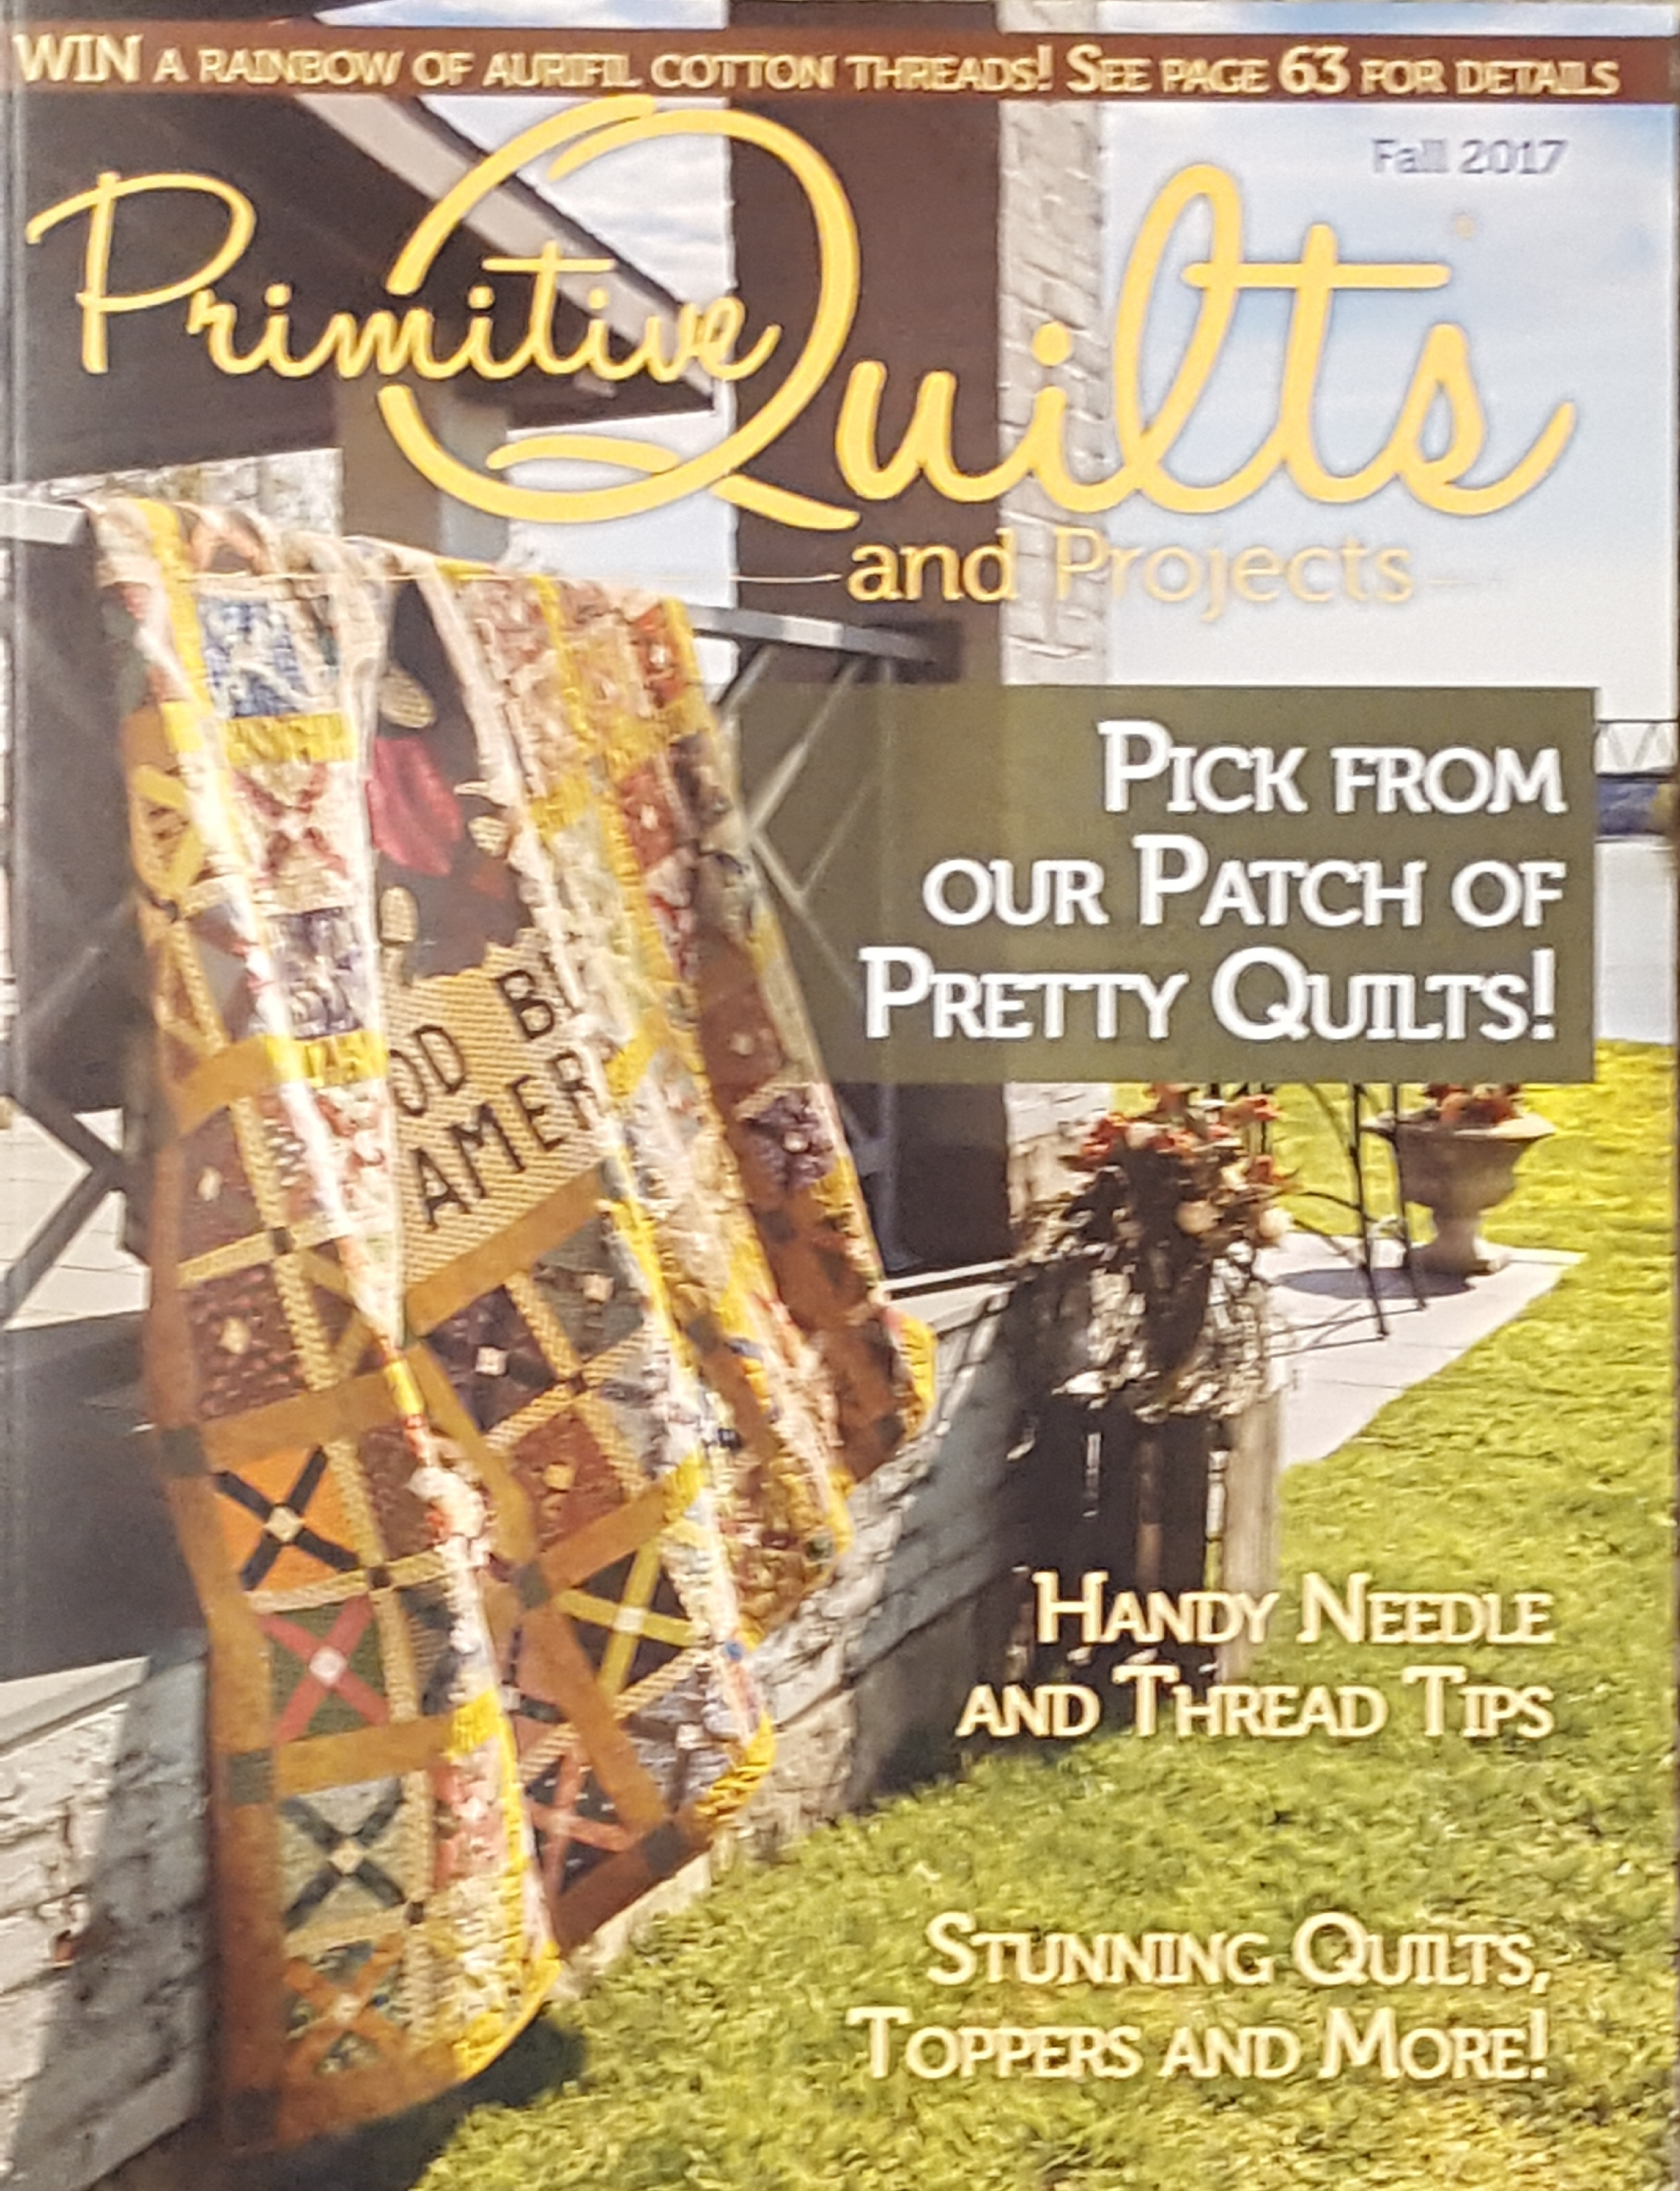 Primitive Quilts & Projects Magazine Fall 2017 | Yellow Creek ... : primitive quilts and projects magazine - Adamdwight.com